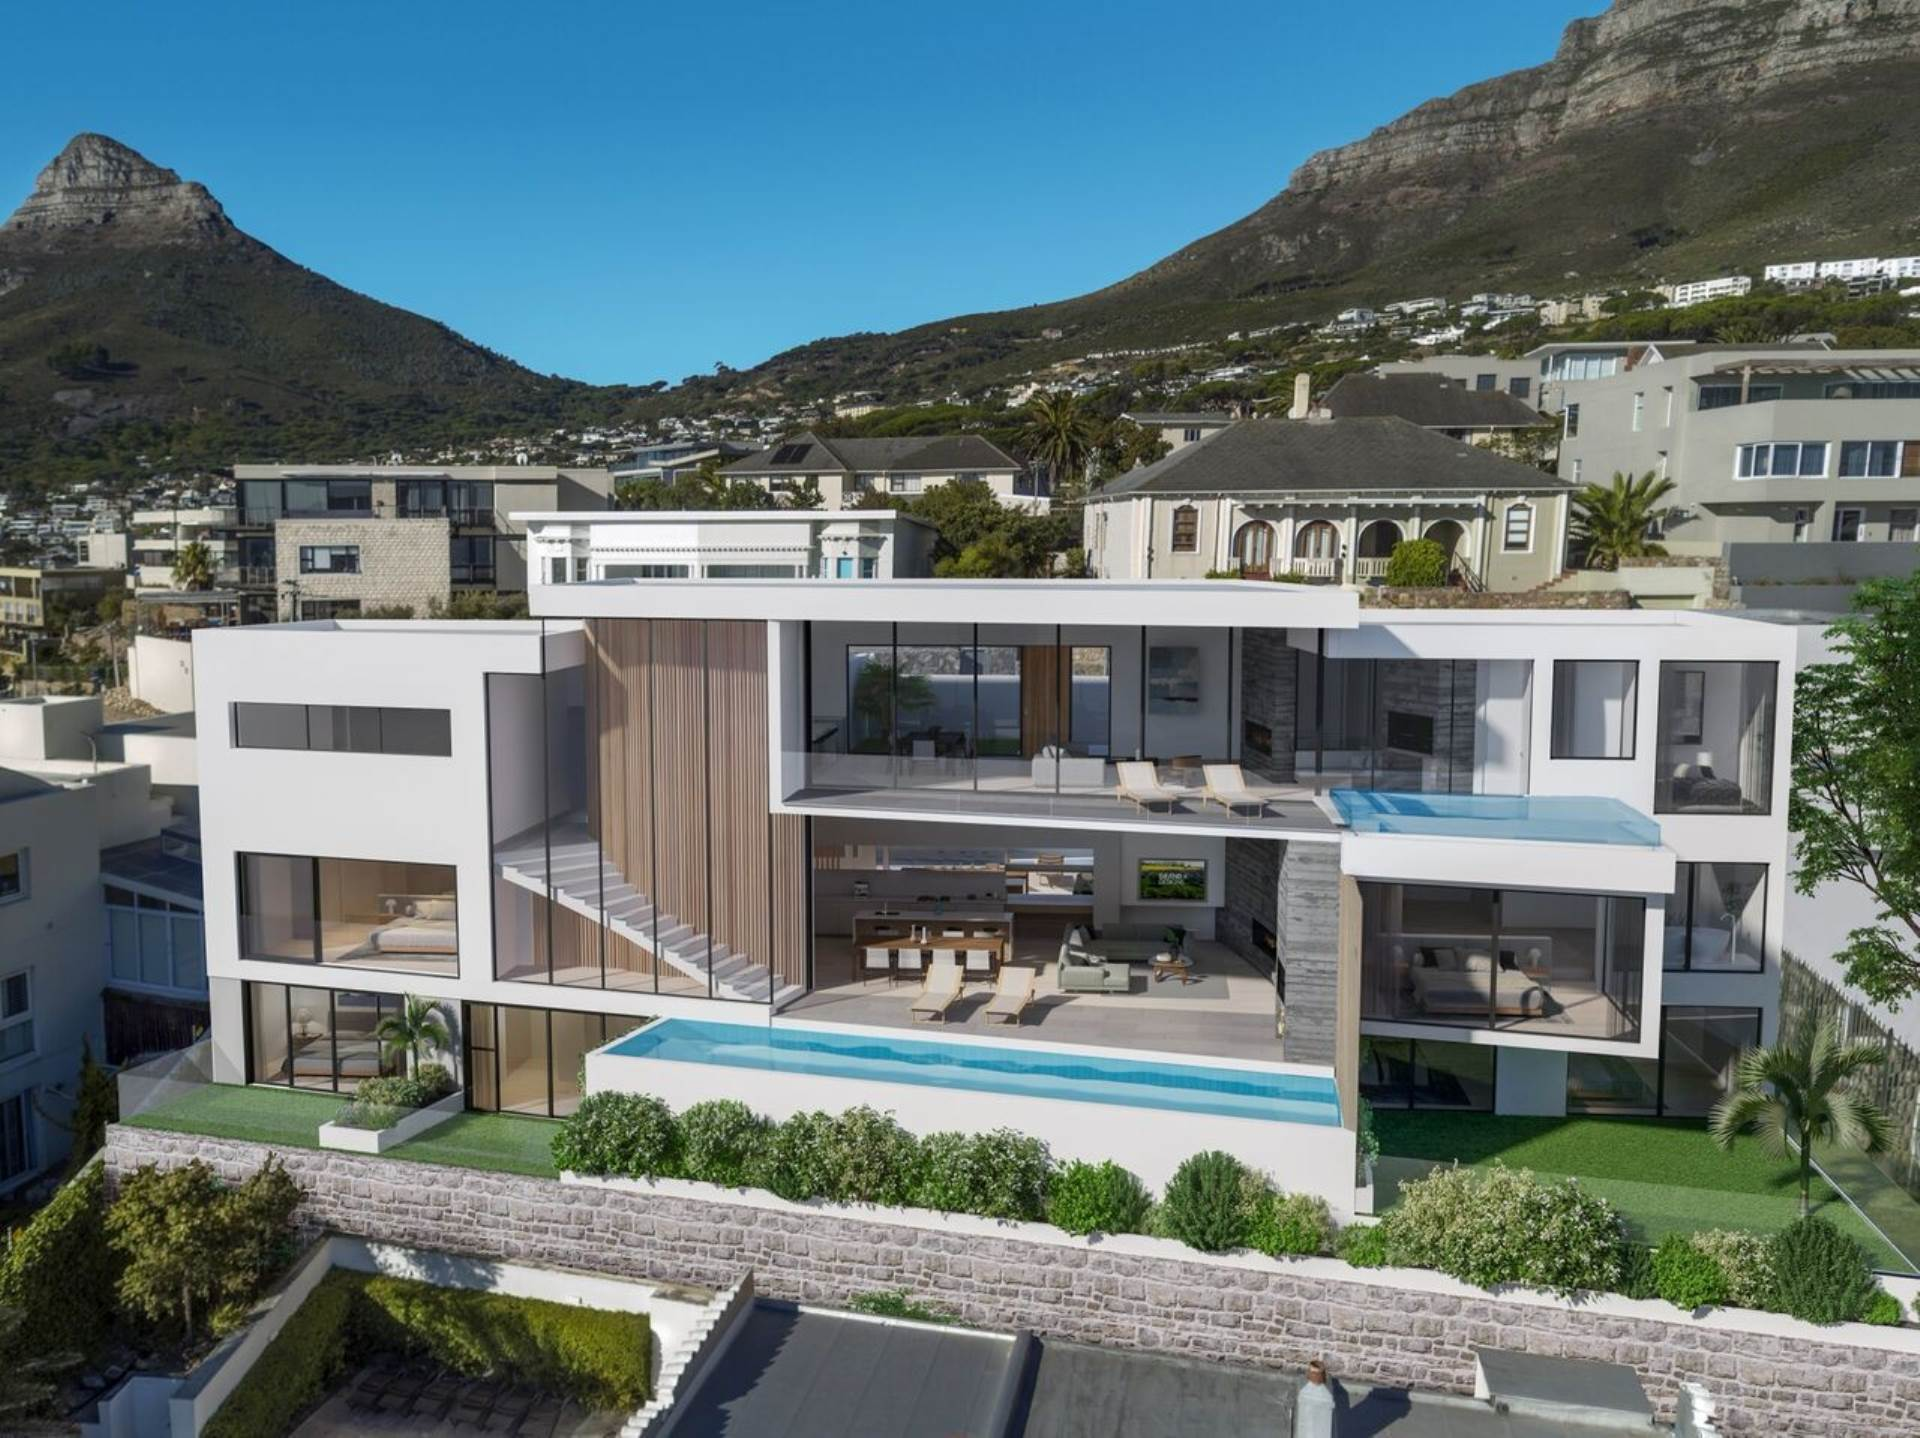 House for sale in camps bay bedroom